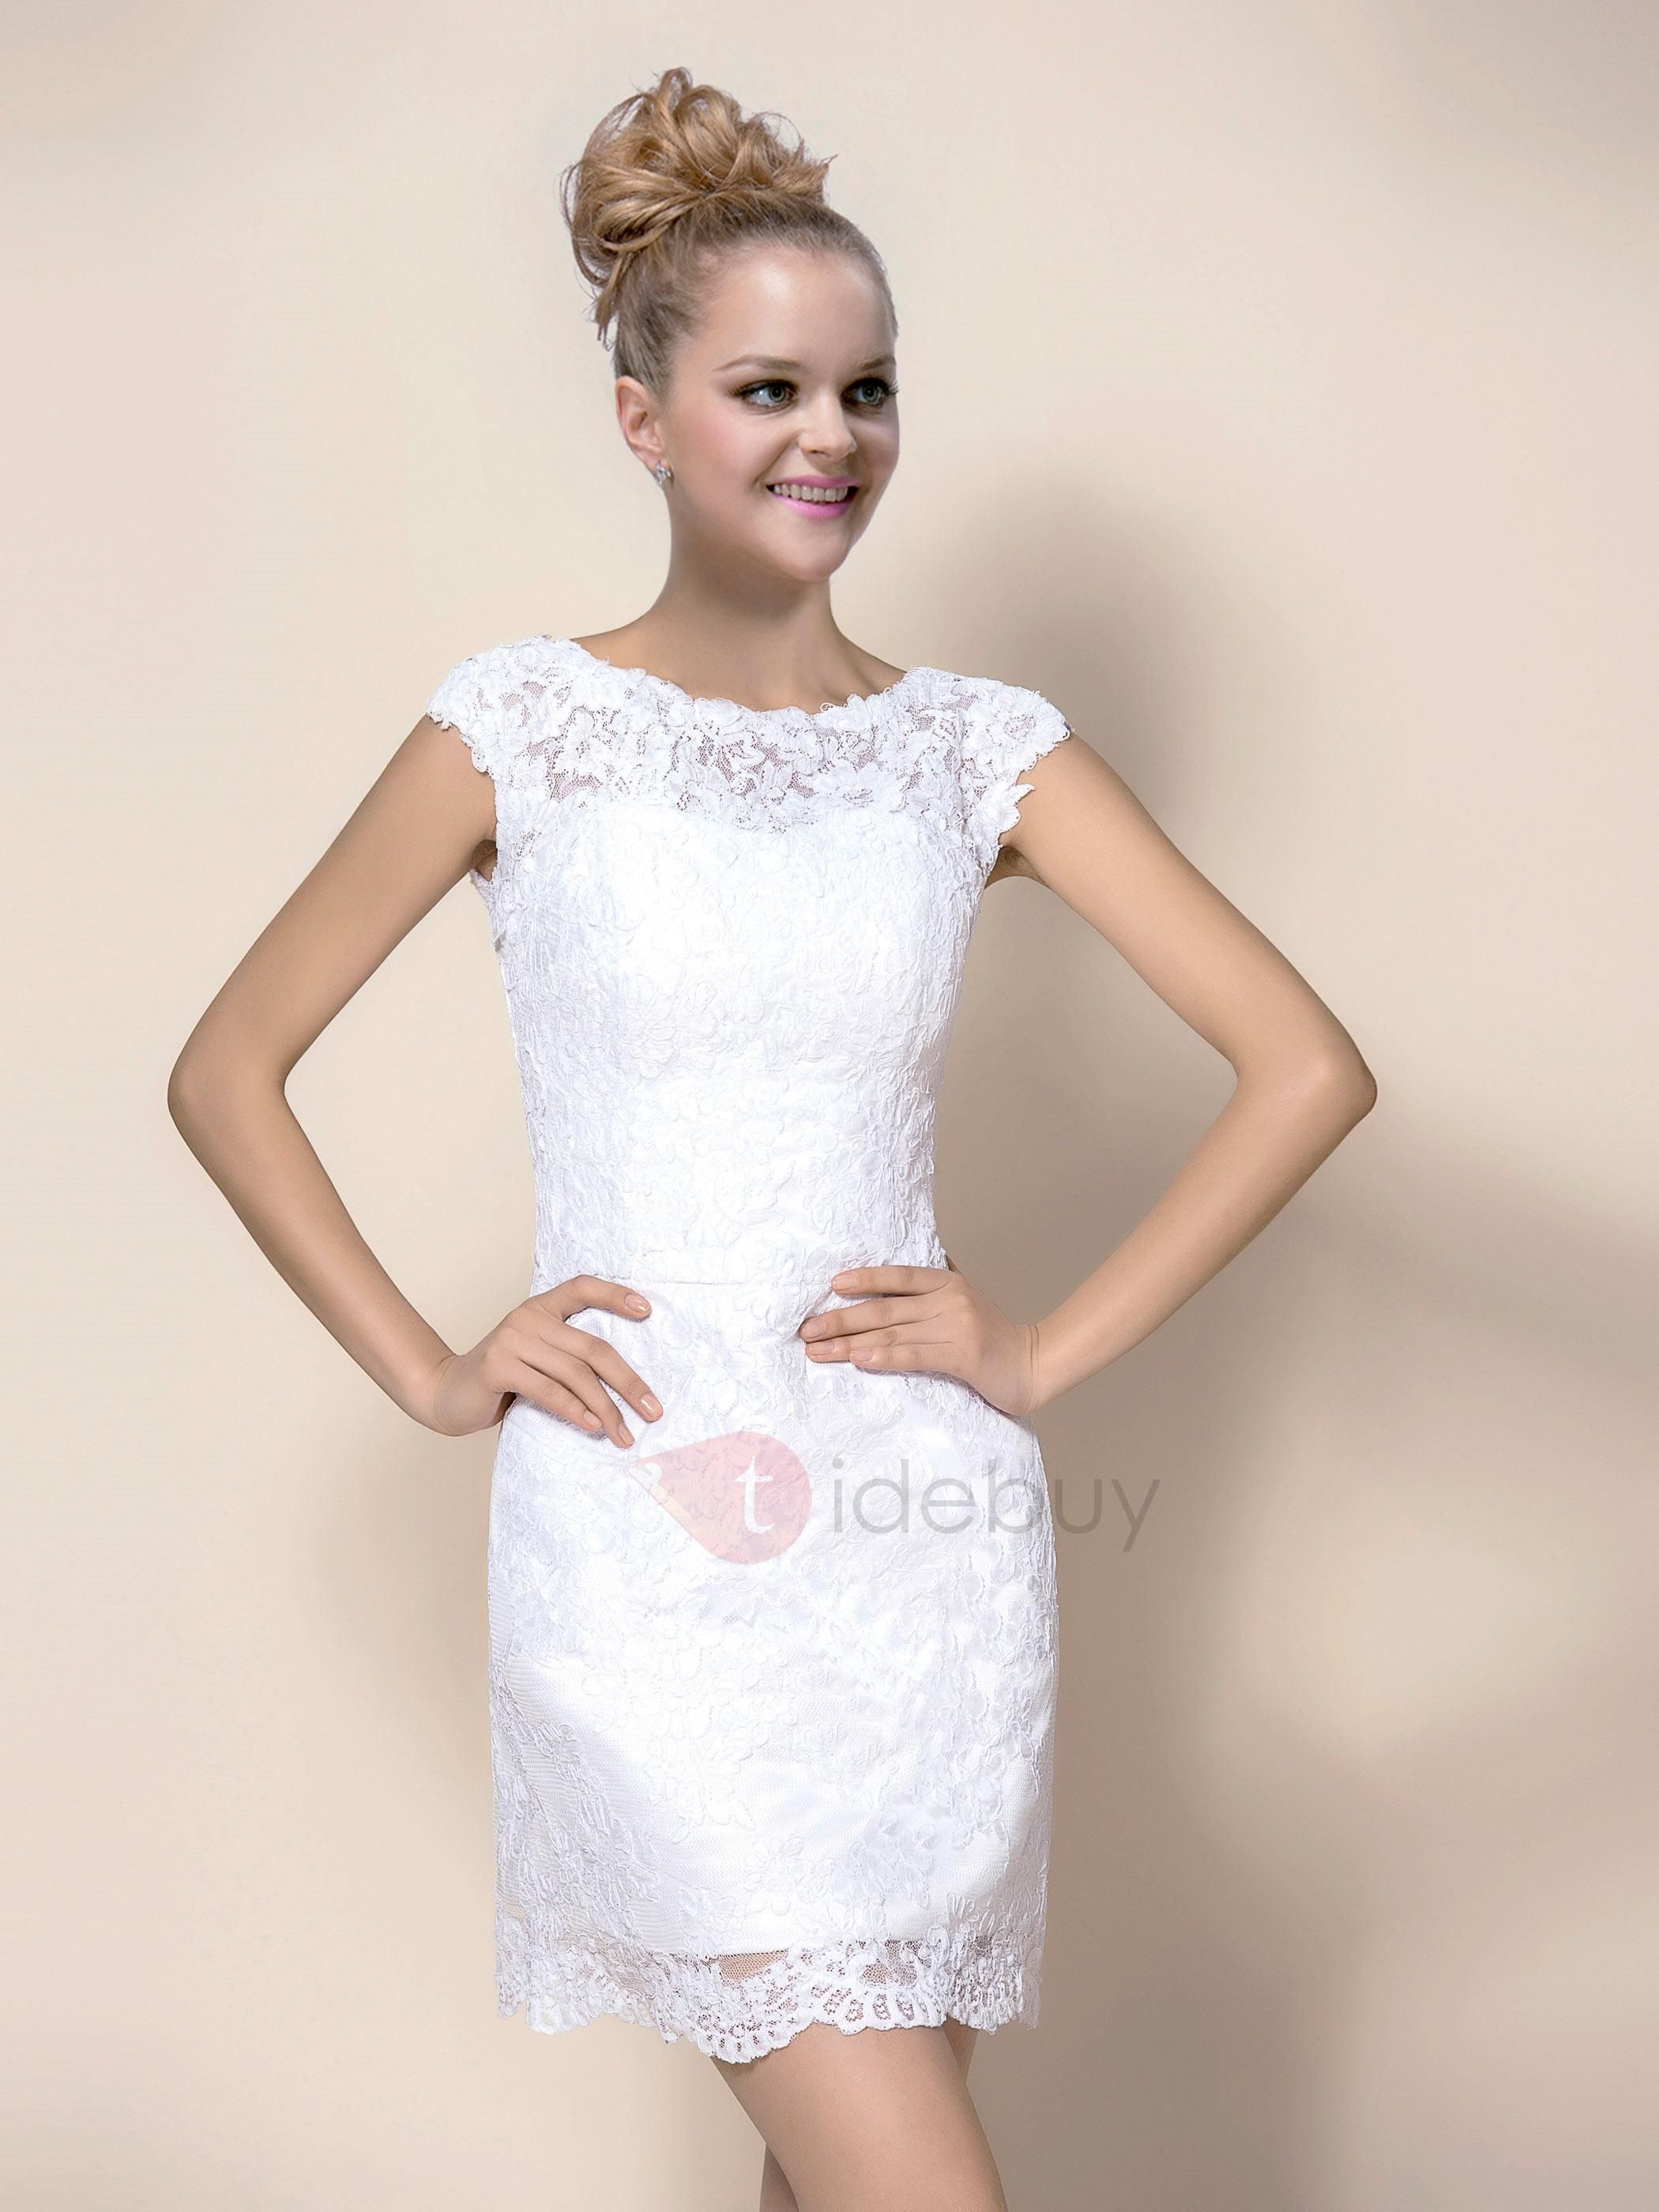 Tidebuy tidebuy pretty scoop neck sheath short white lace wedding